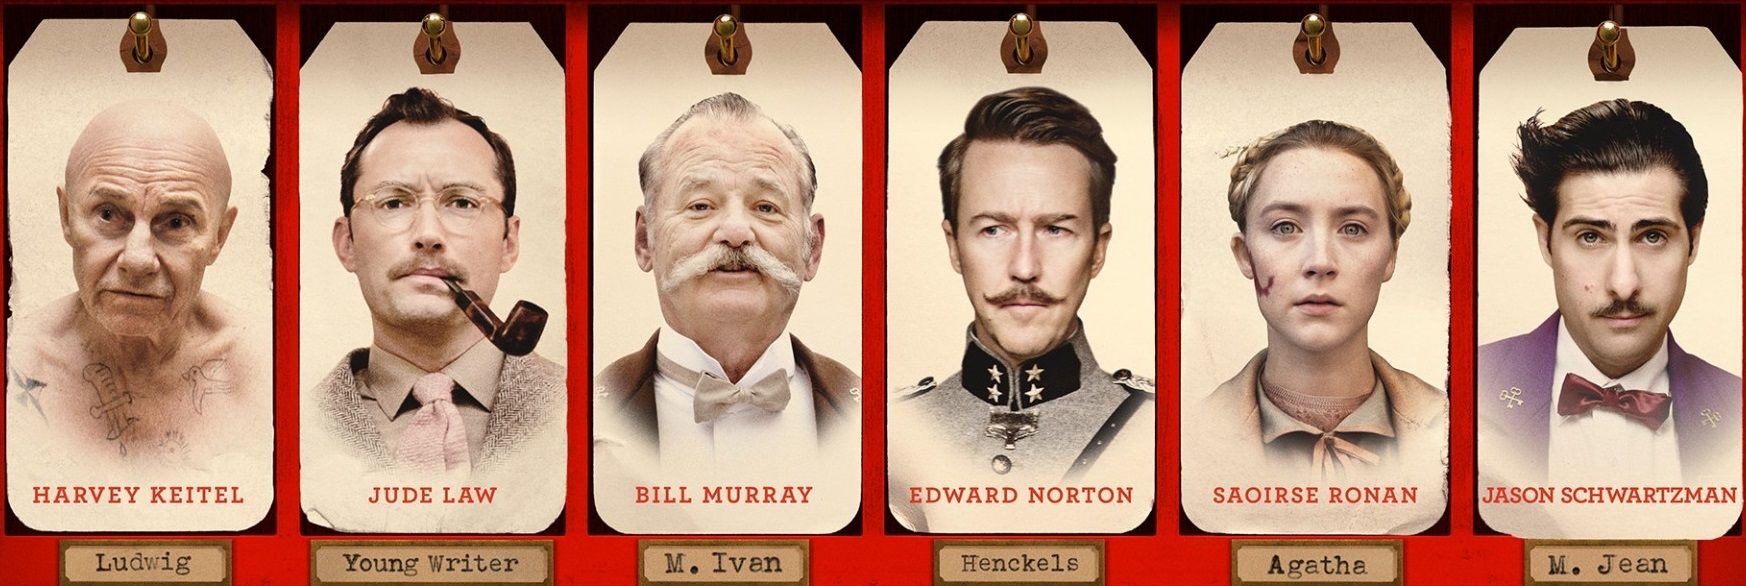 new poster for the grand budapest hotel shows off the cast live new poster for the grand budapest hotel shows off the cast live uber cool the o jays for the and hotels